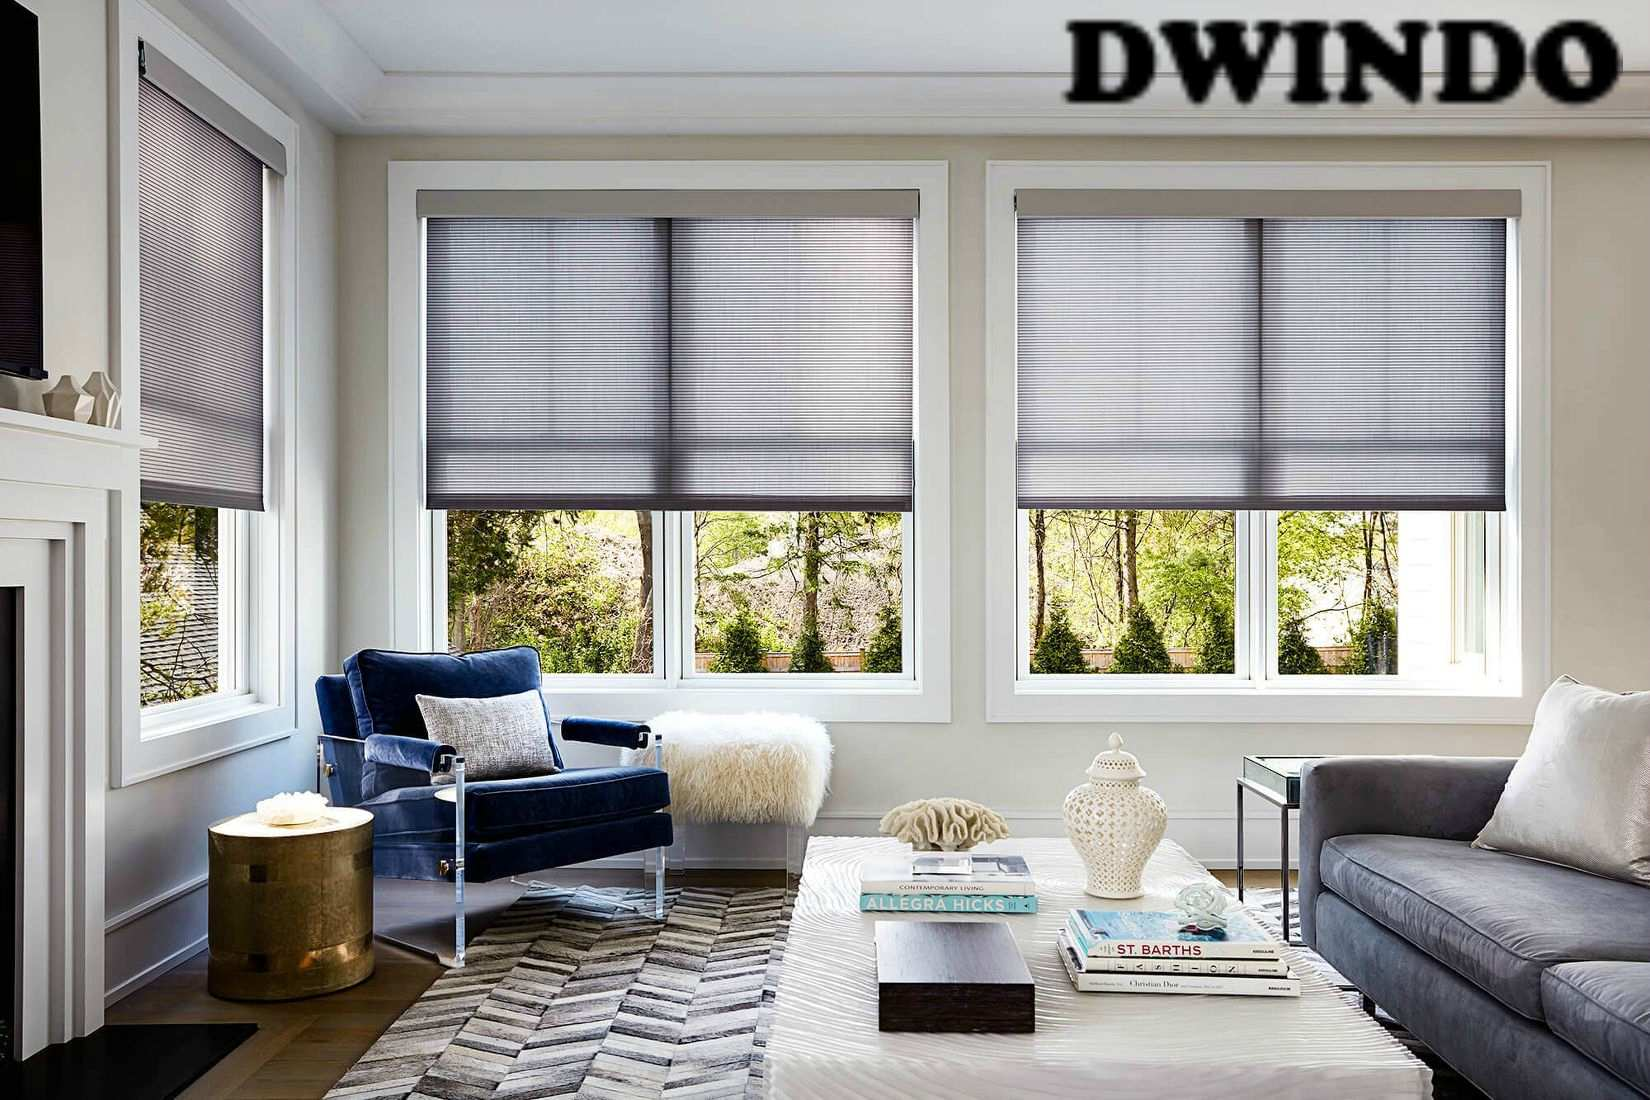 Dwindo: An eminent window blinds store